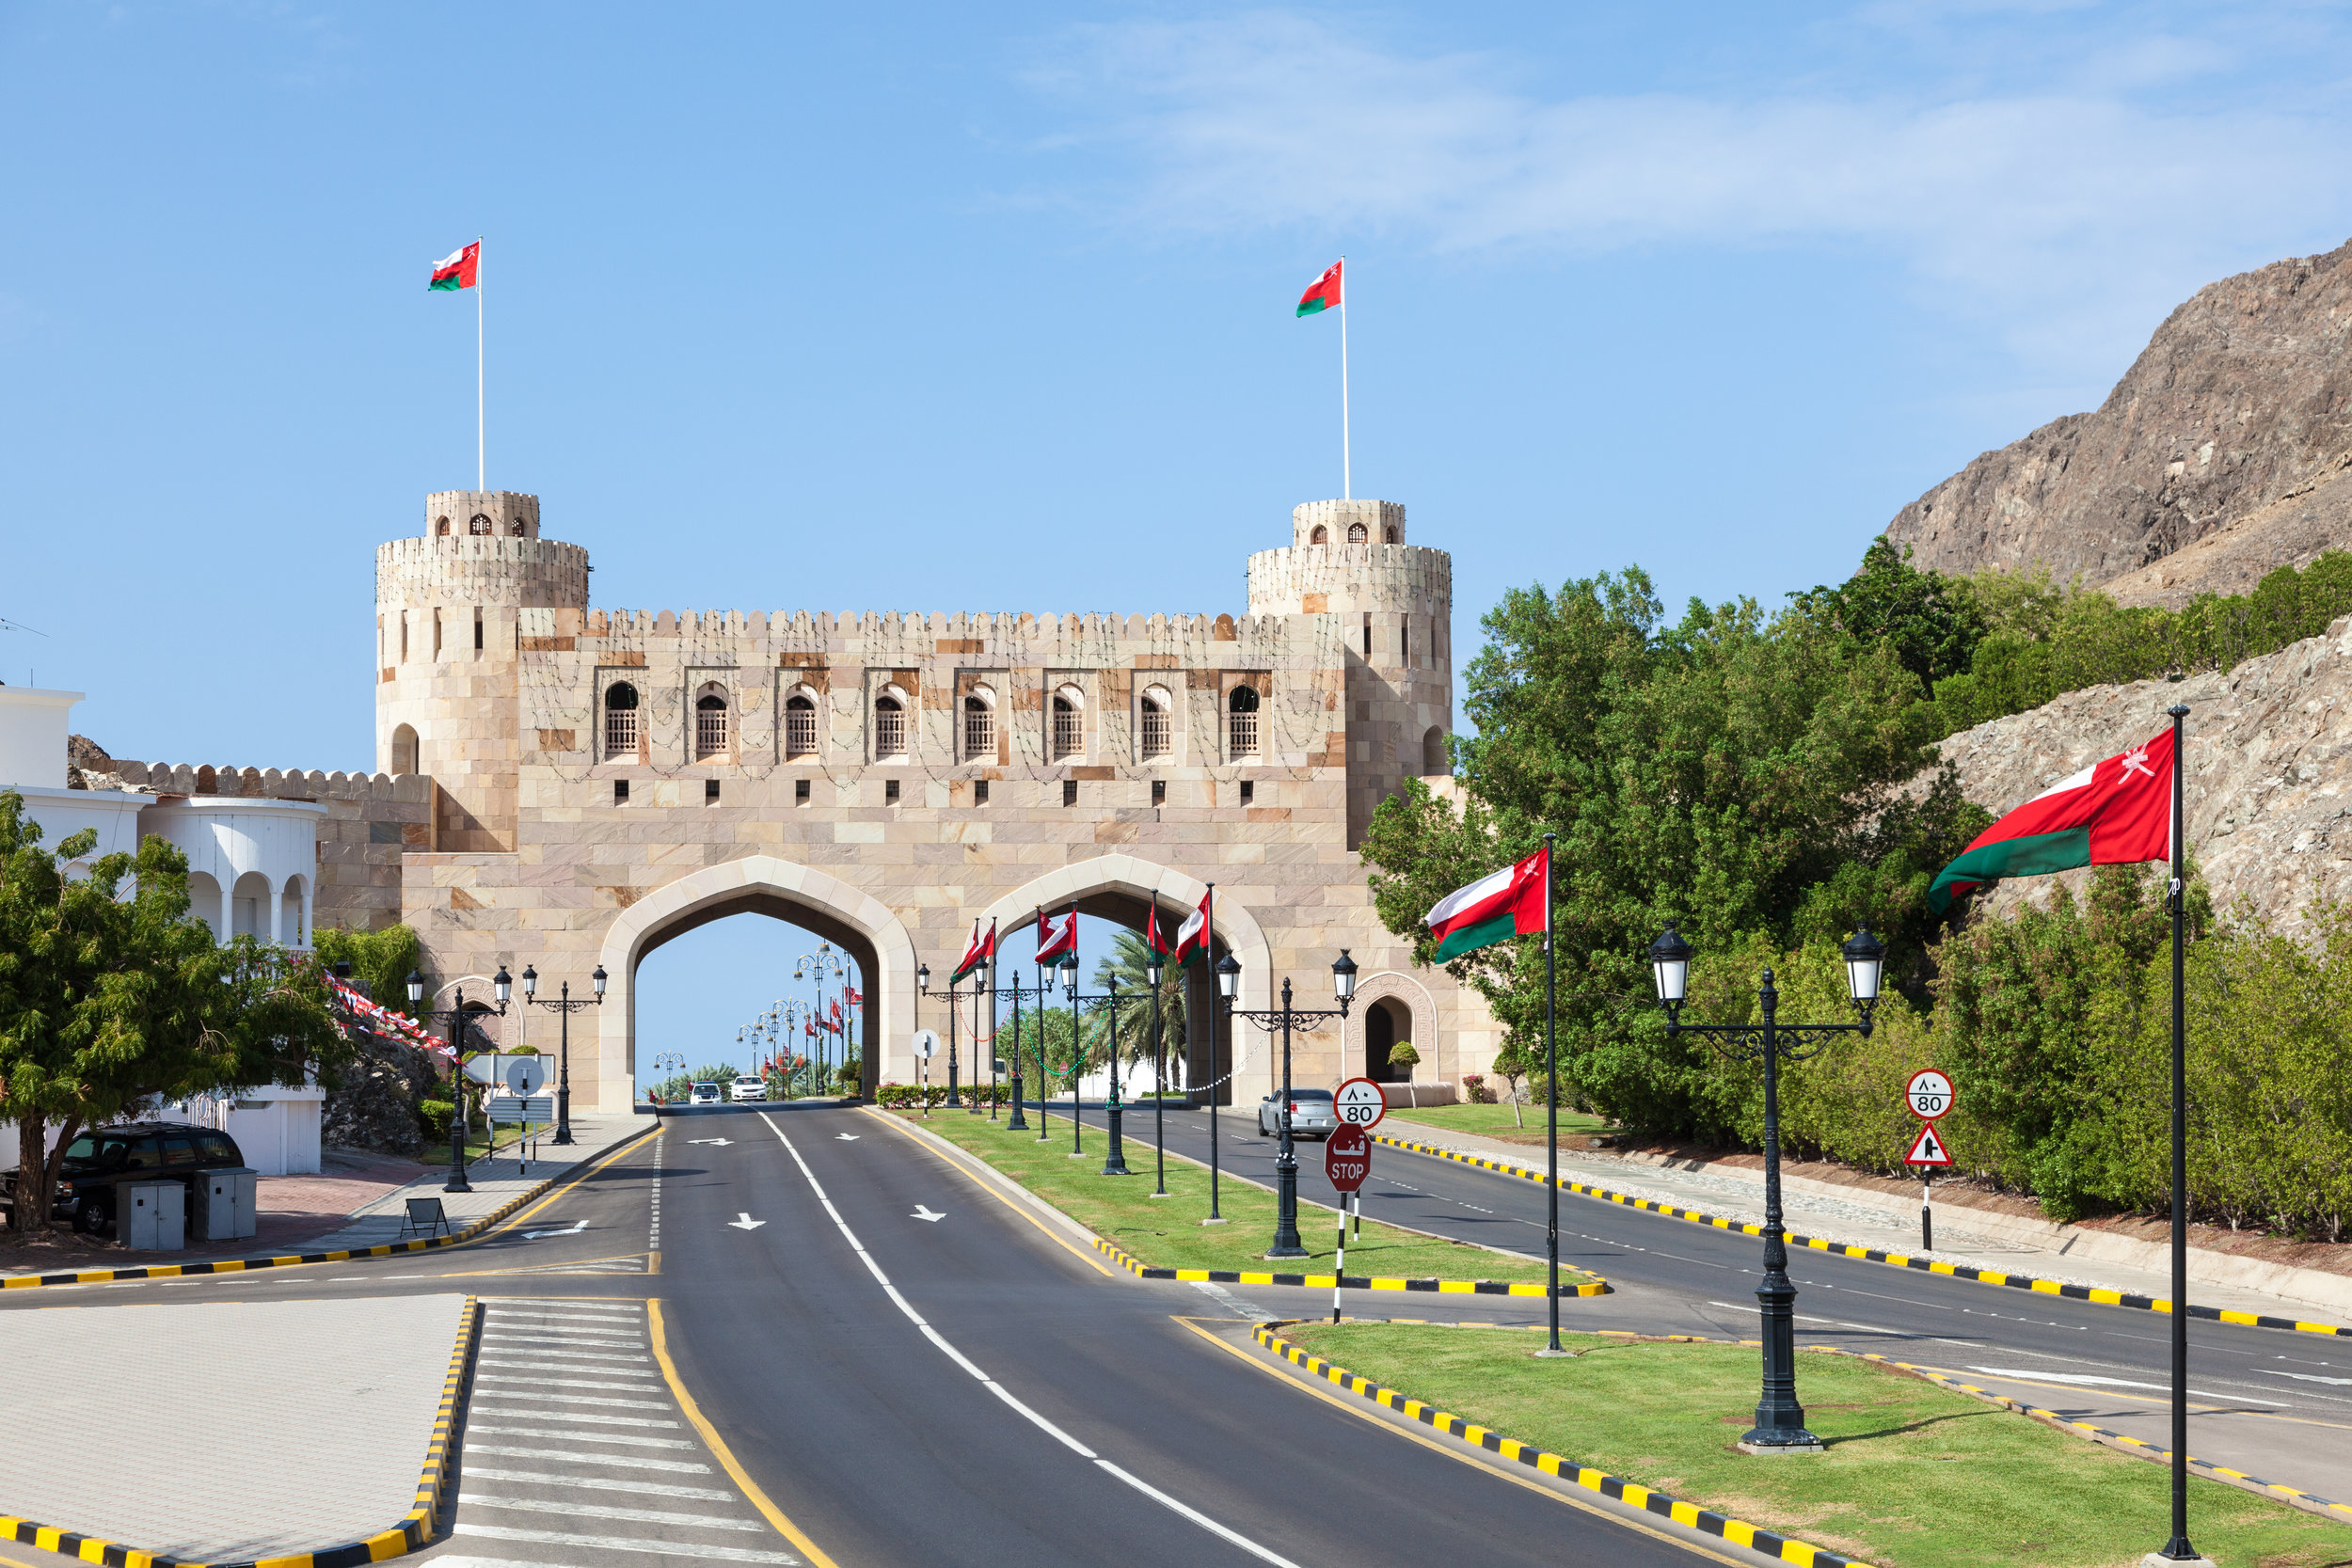 oman_bigstock-Gate-To-The-Old-Town-Of-Muscat-114950582.jpg